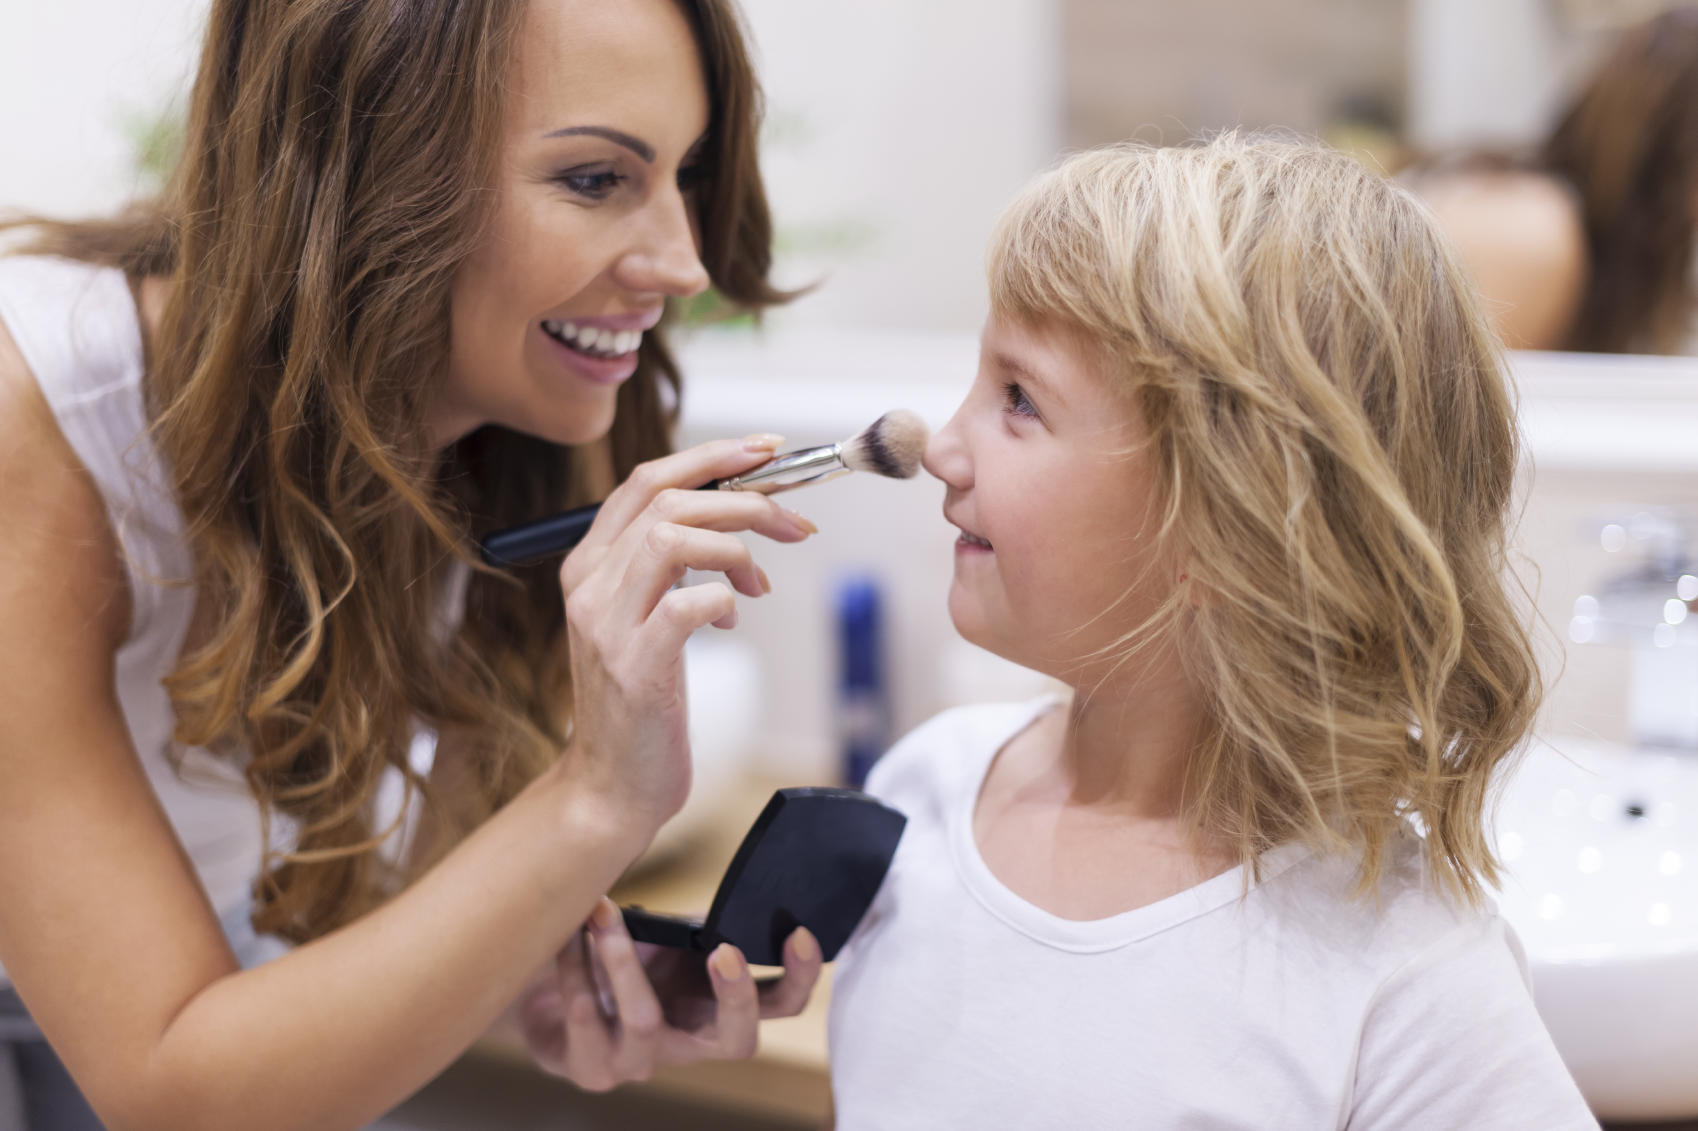 5 unpopular beauty tips I gave to my daughter